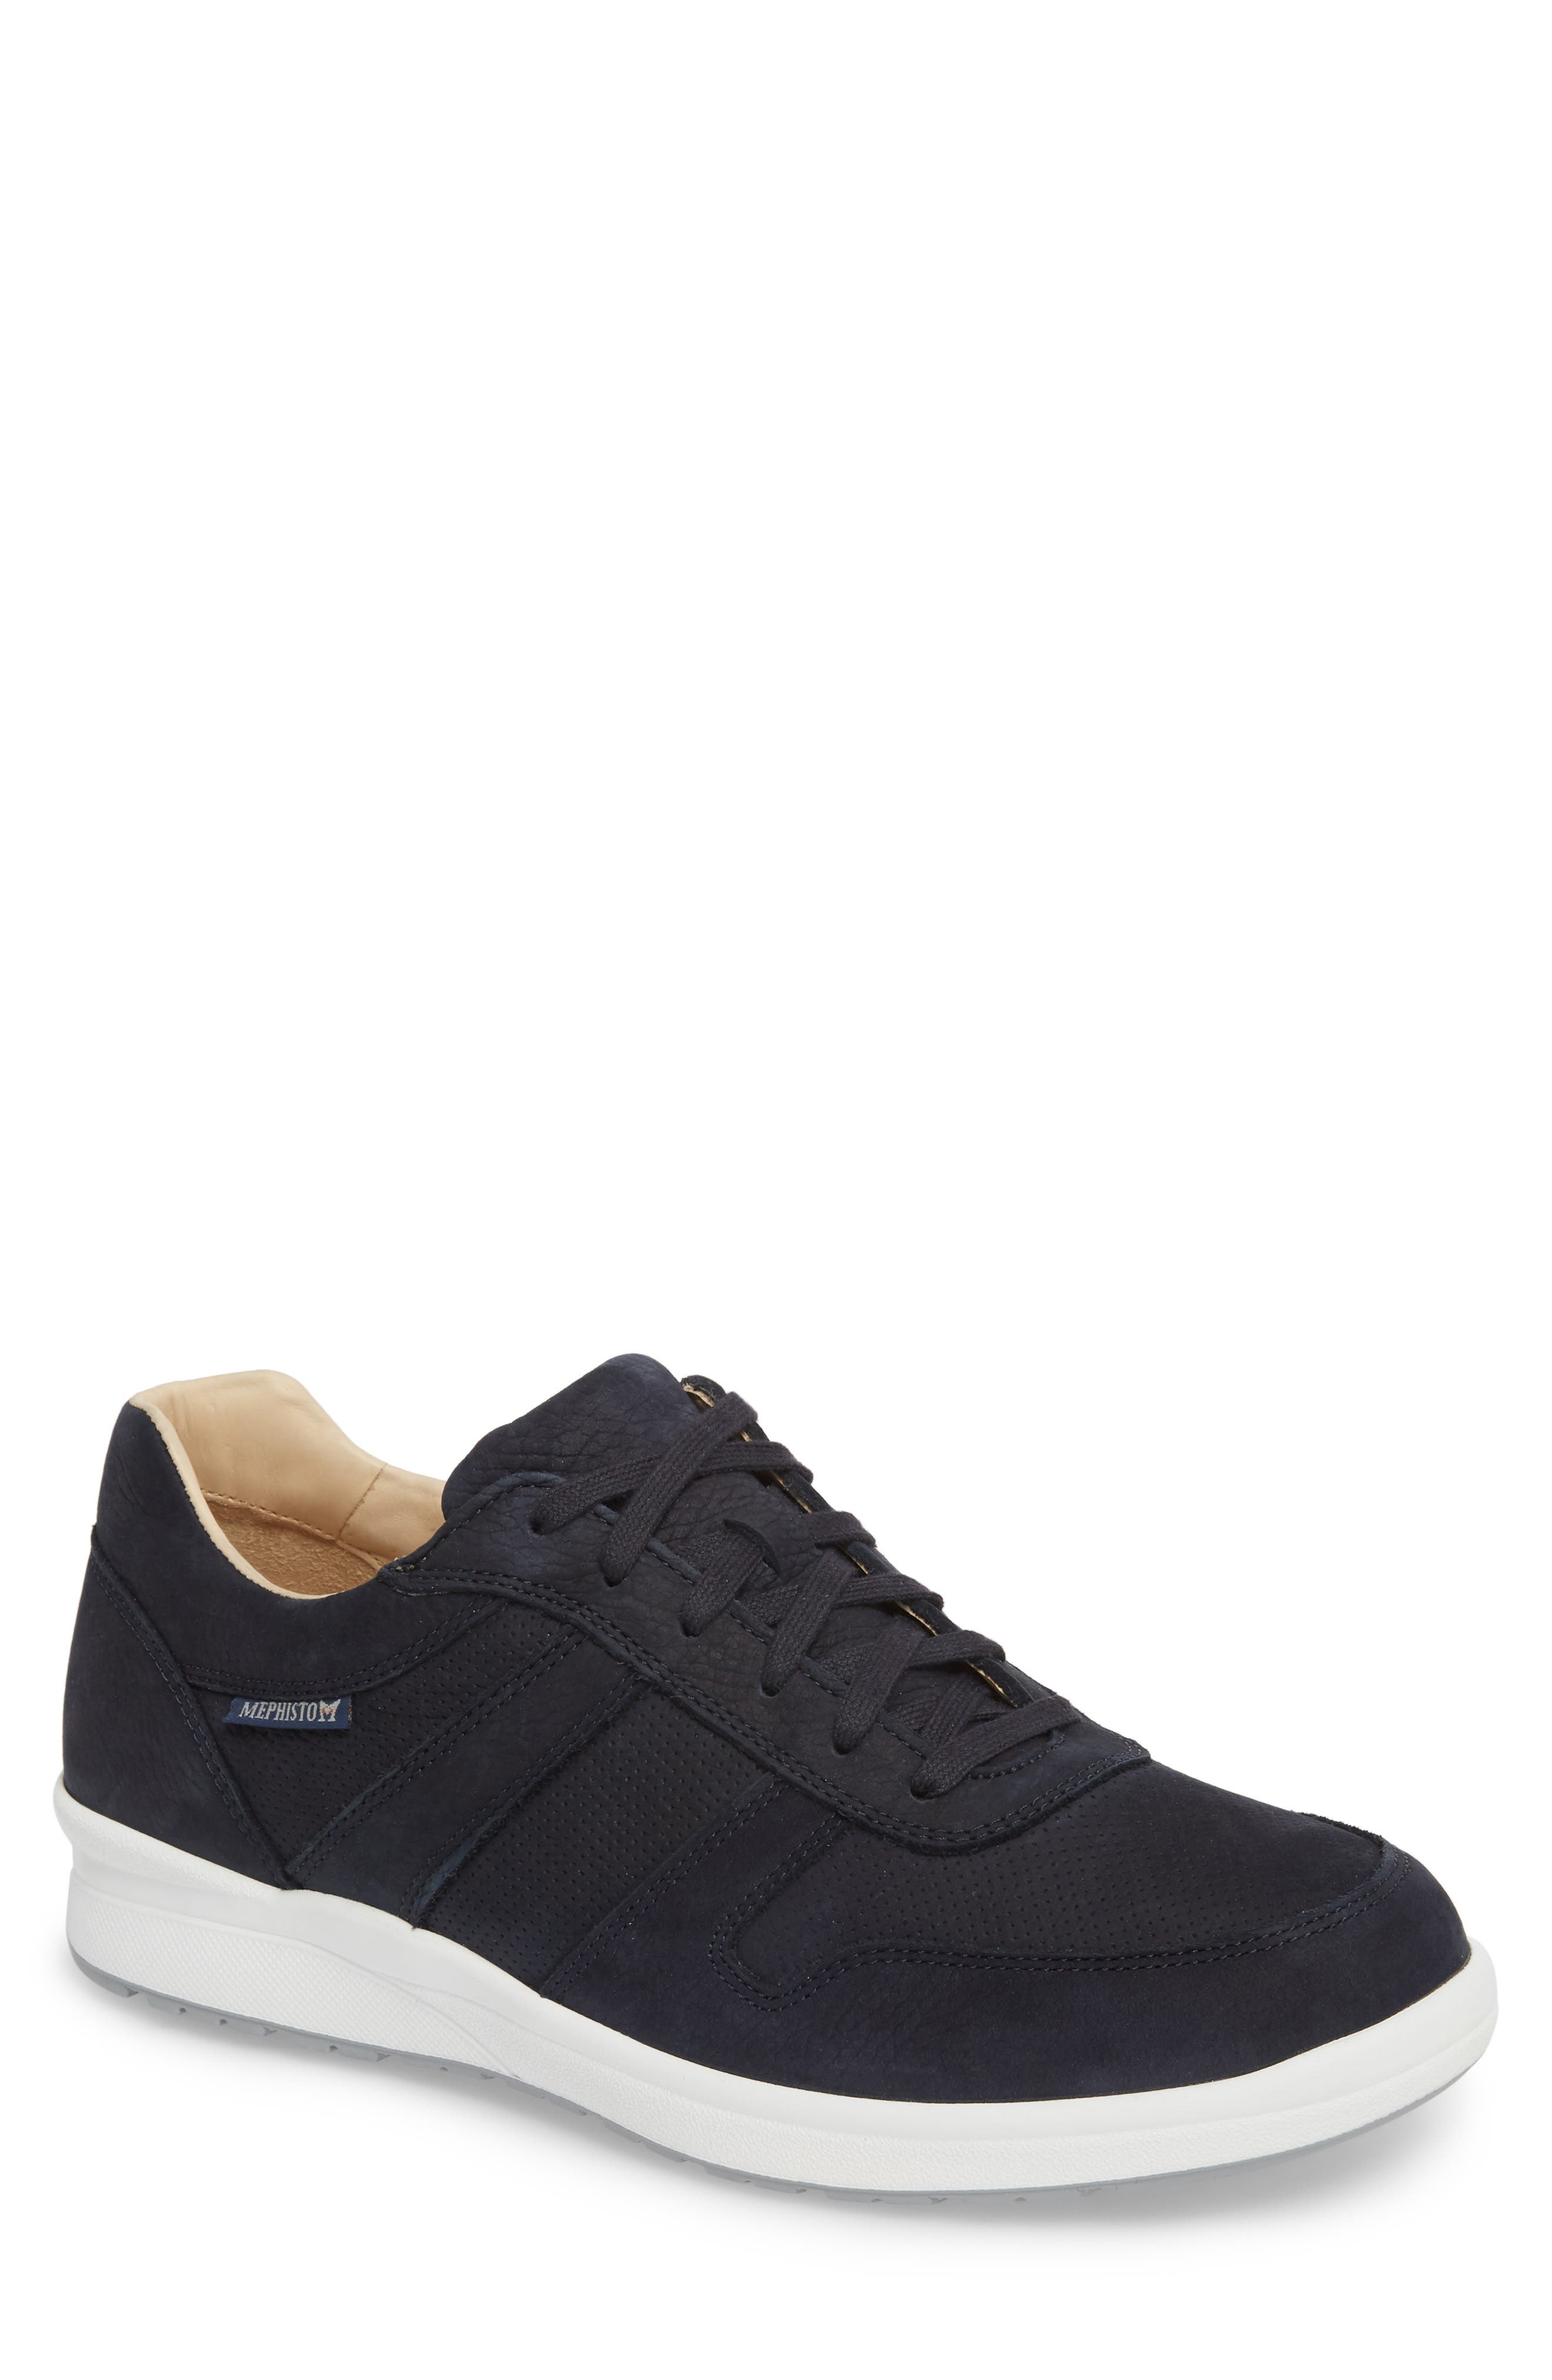 Vito Perforated Sneaker,                         Main,                         color, Navy